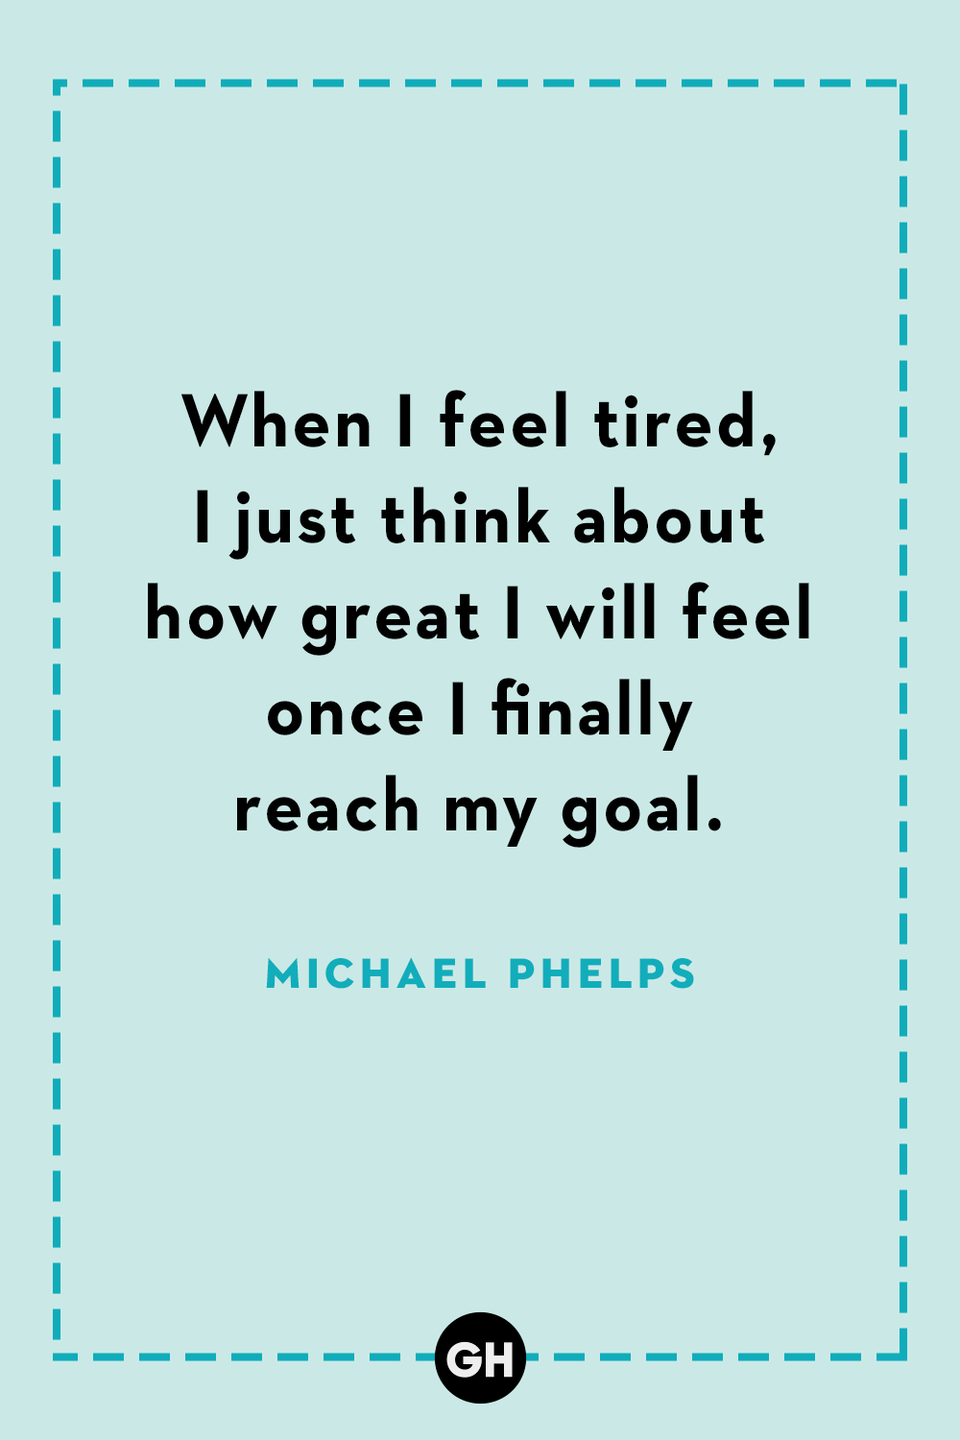 <p>When I feel tired, I just think about how great I will feel once I finally reach my goal.</p>